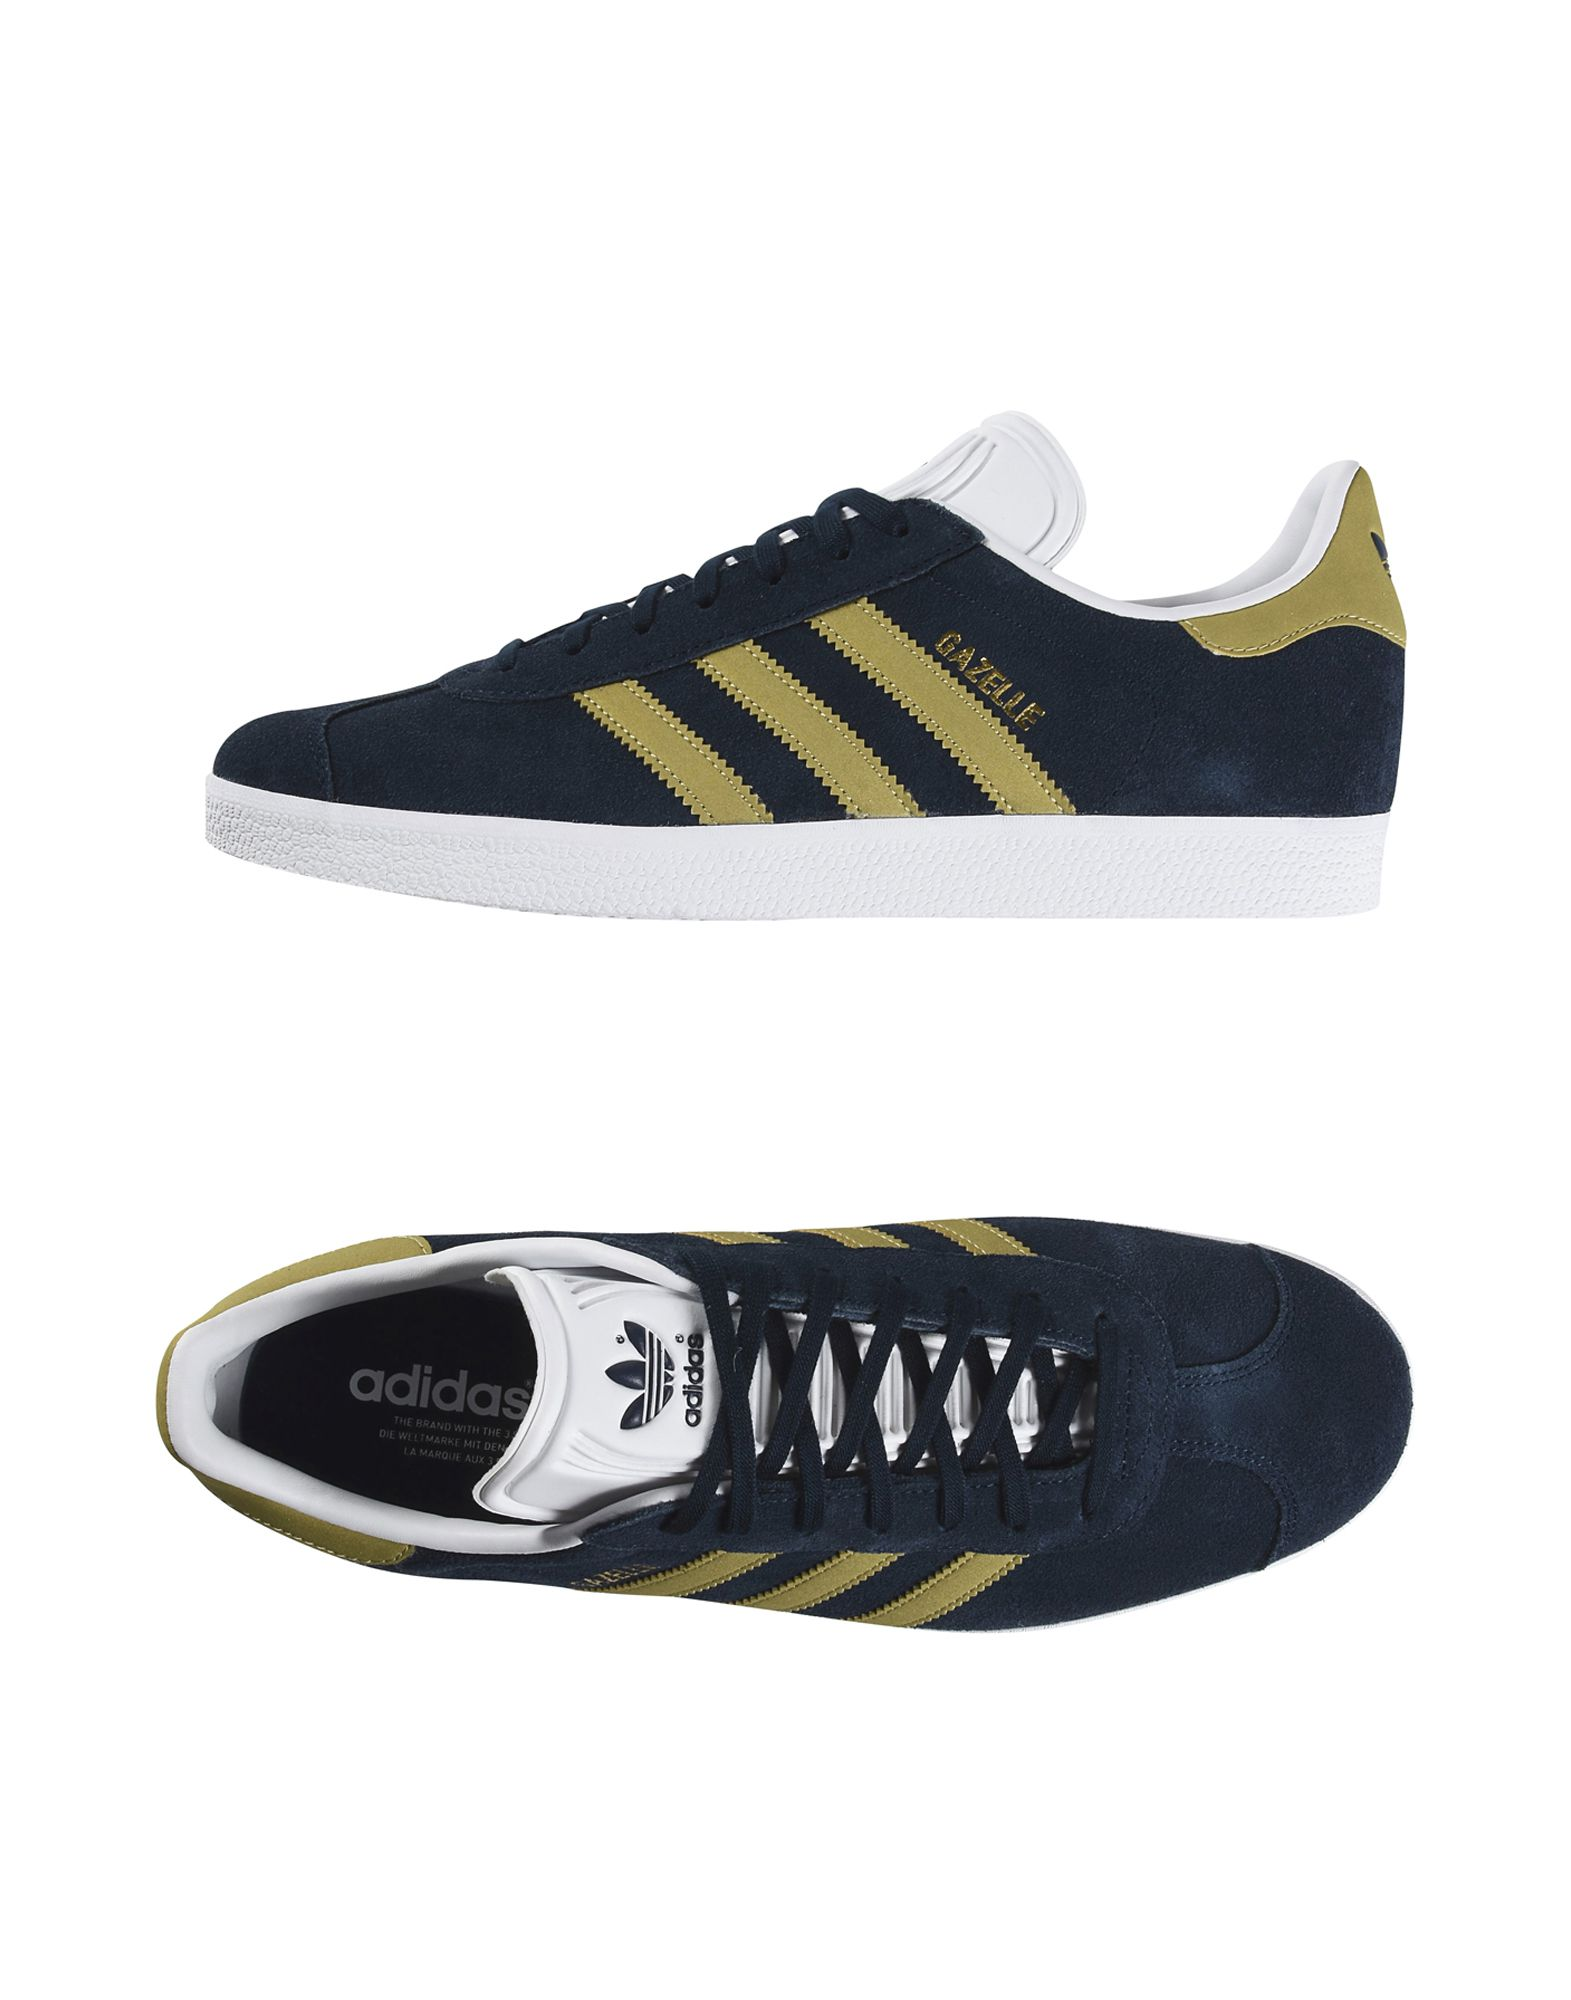 Adidas Originals Gazelle - Sneakers Sneakers - Men Adidas Originals Sneakers Sneakers online on  United Kingdom - 11371747OU 740336